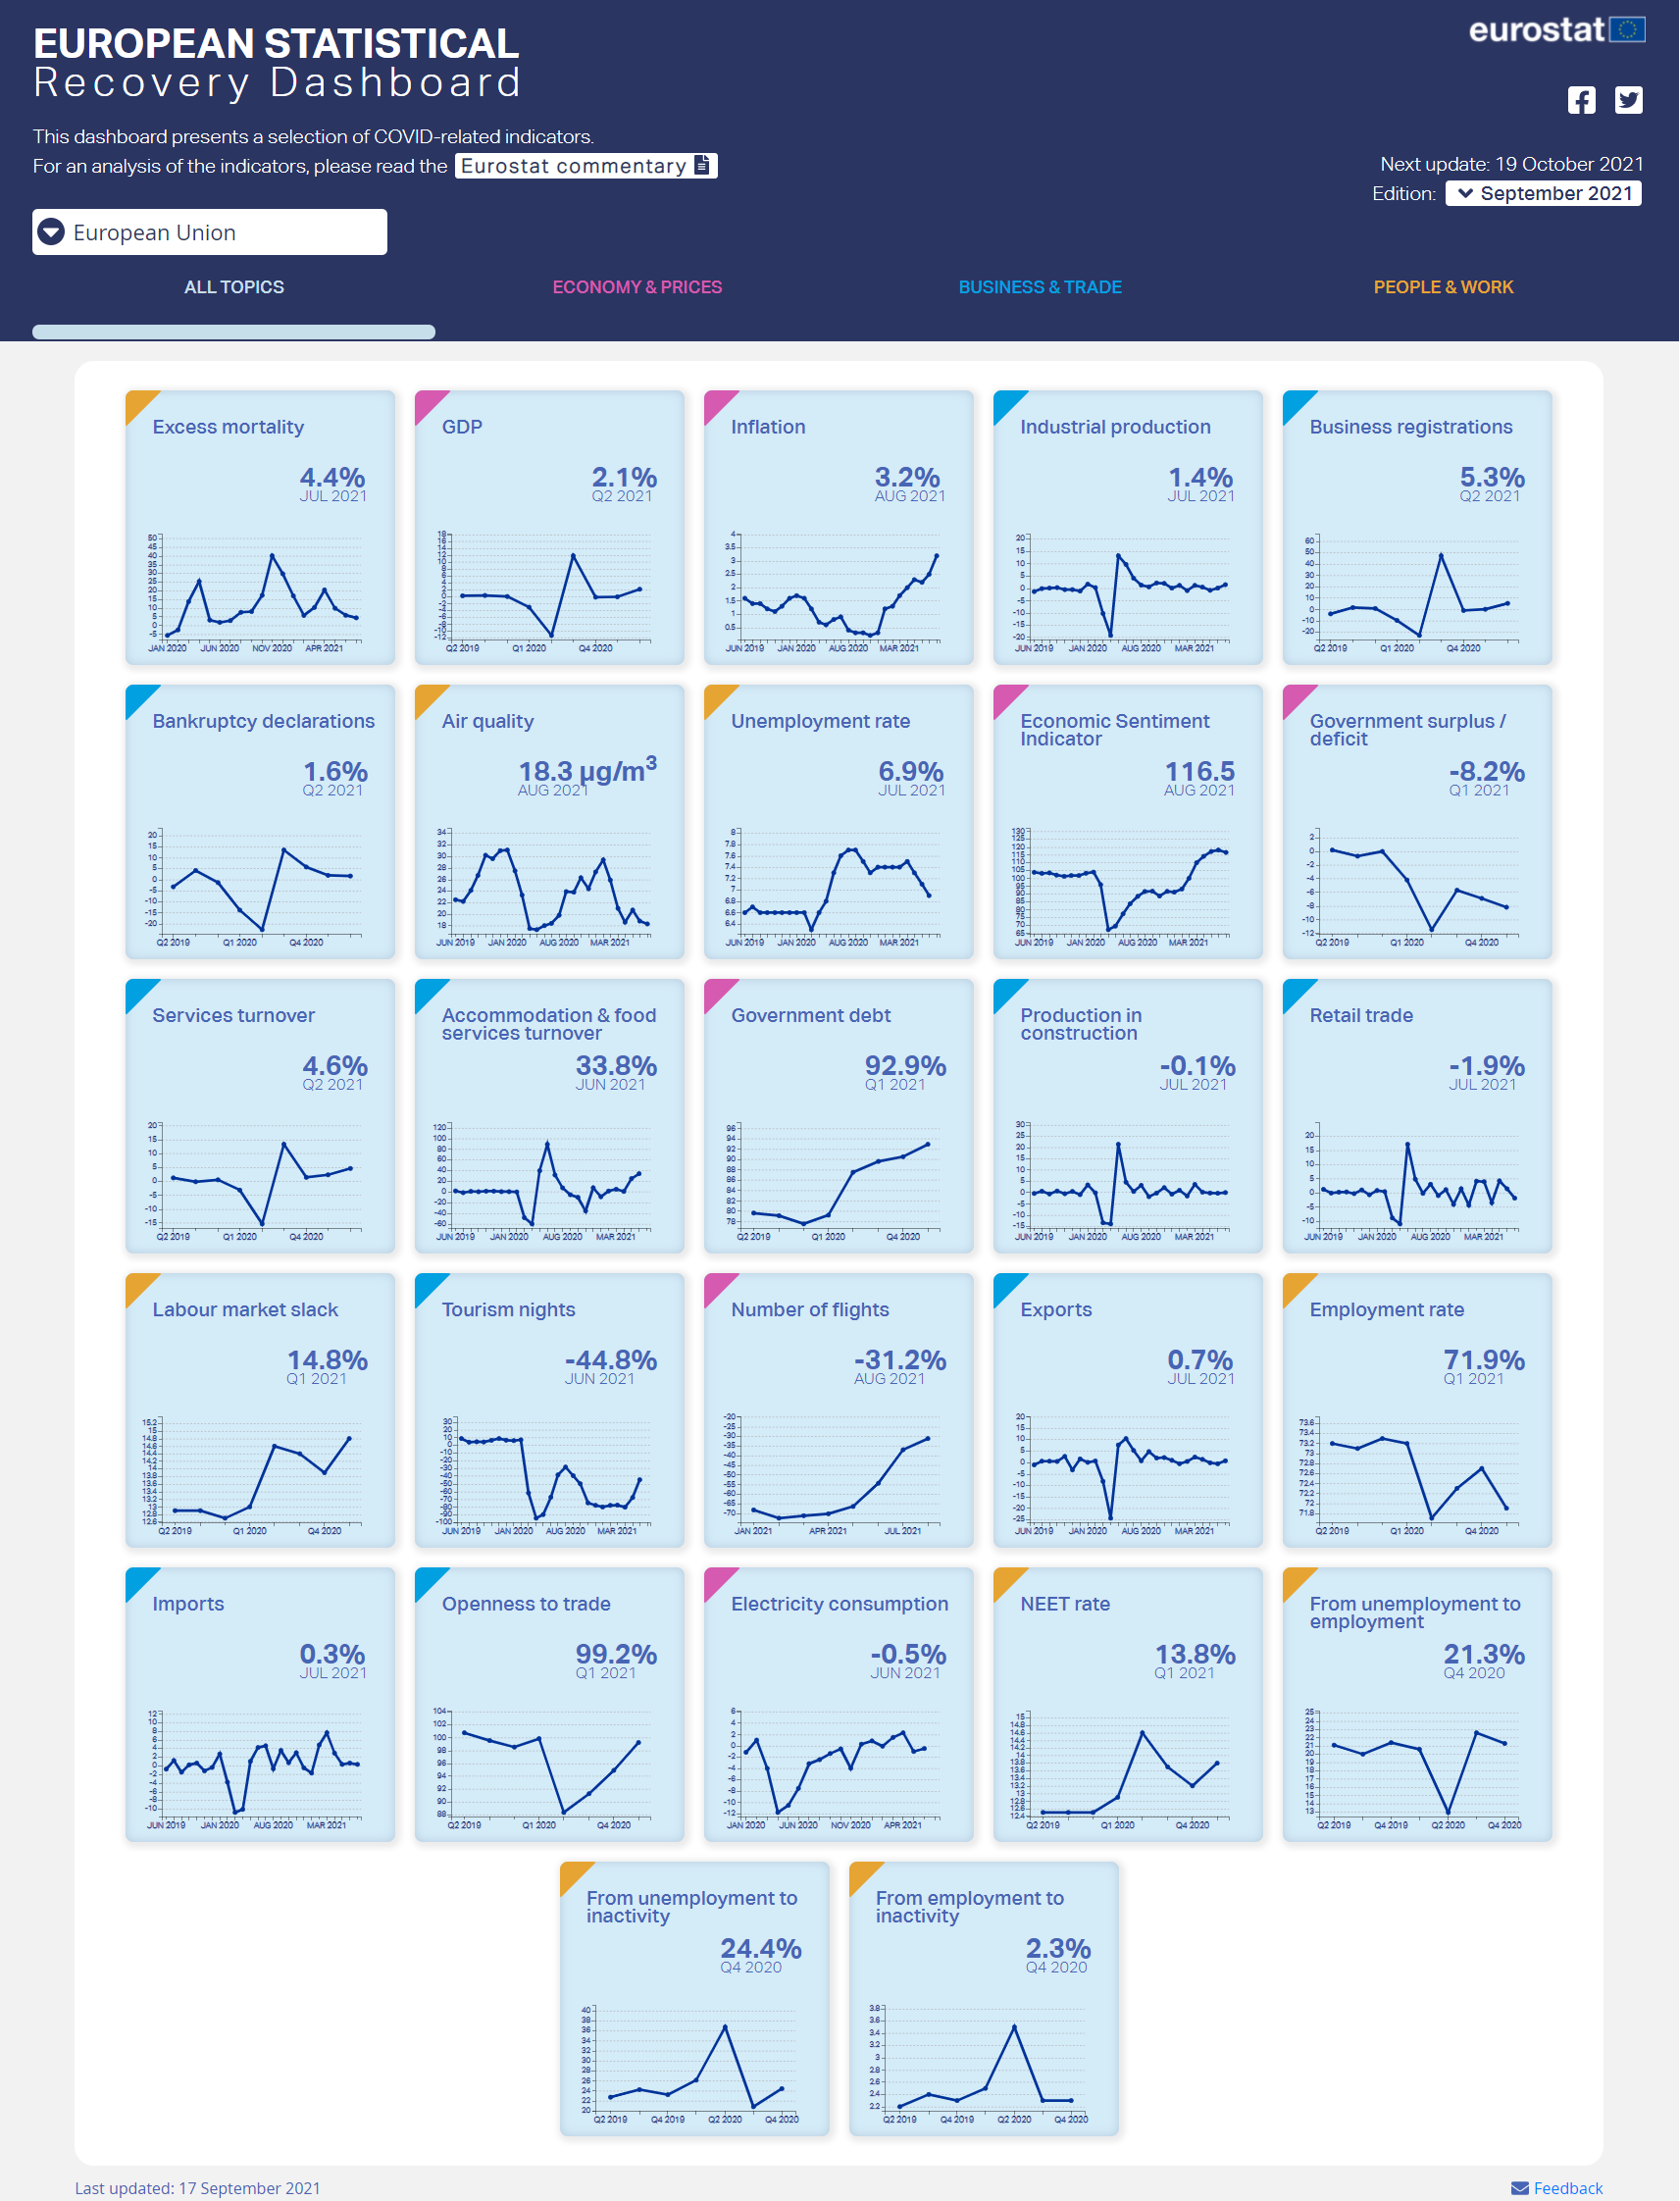 Screenshot of the European Statistical Recovery Dashboard - September edition